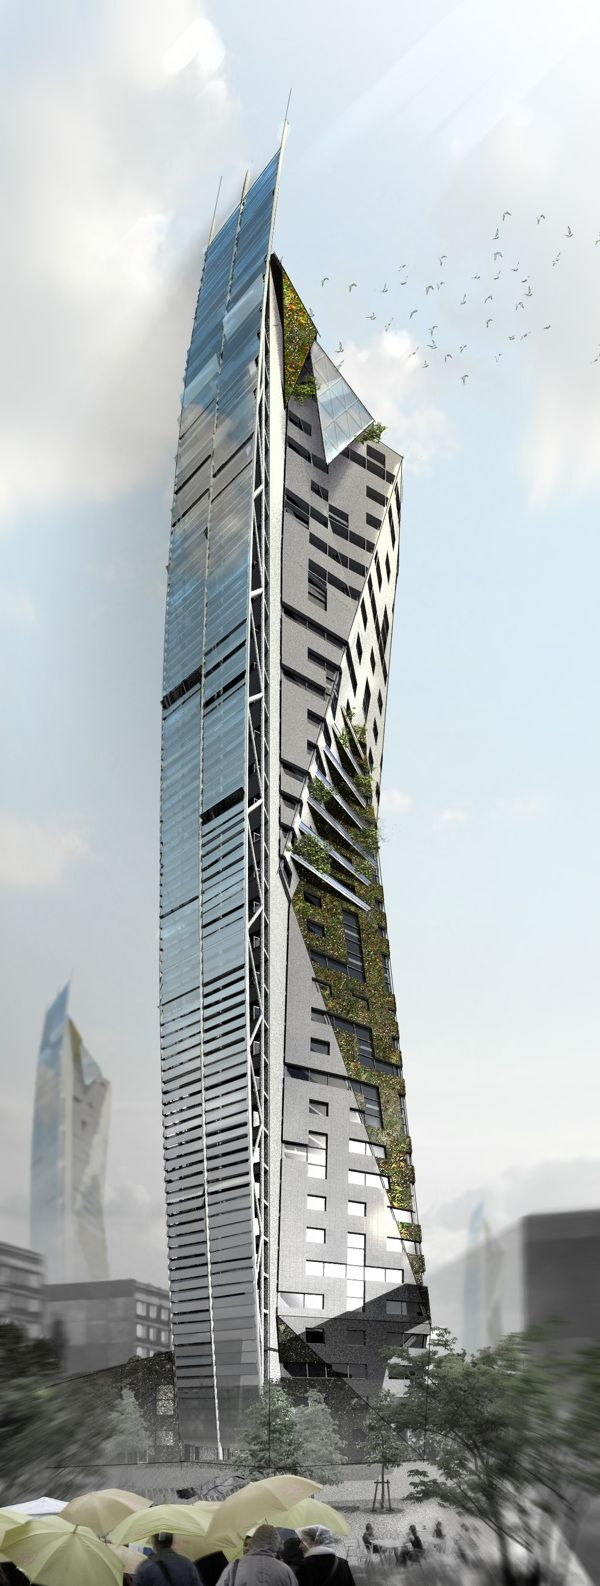 Eco Tower by Pavlo Kryvozub, via Behance